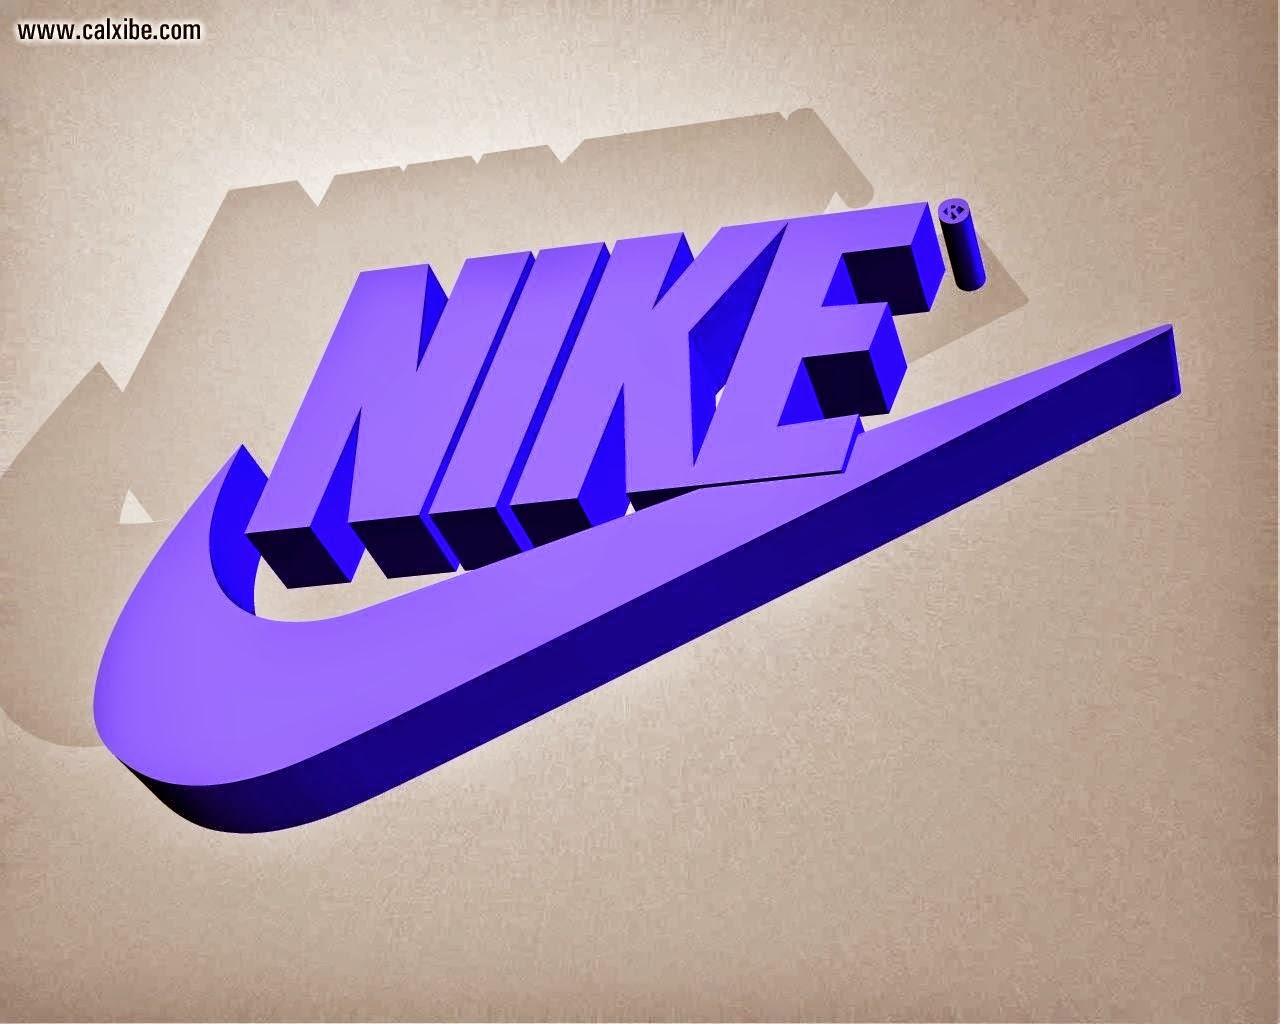 Popular Wallpaper Logo Nike - Wallpapers-For-Cool-Blue-Nike-Logo-Wallpaper  Photograph_216772.jpg